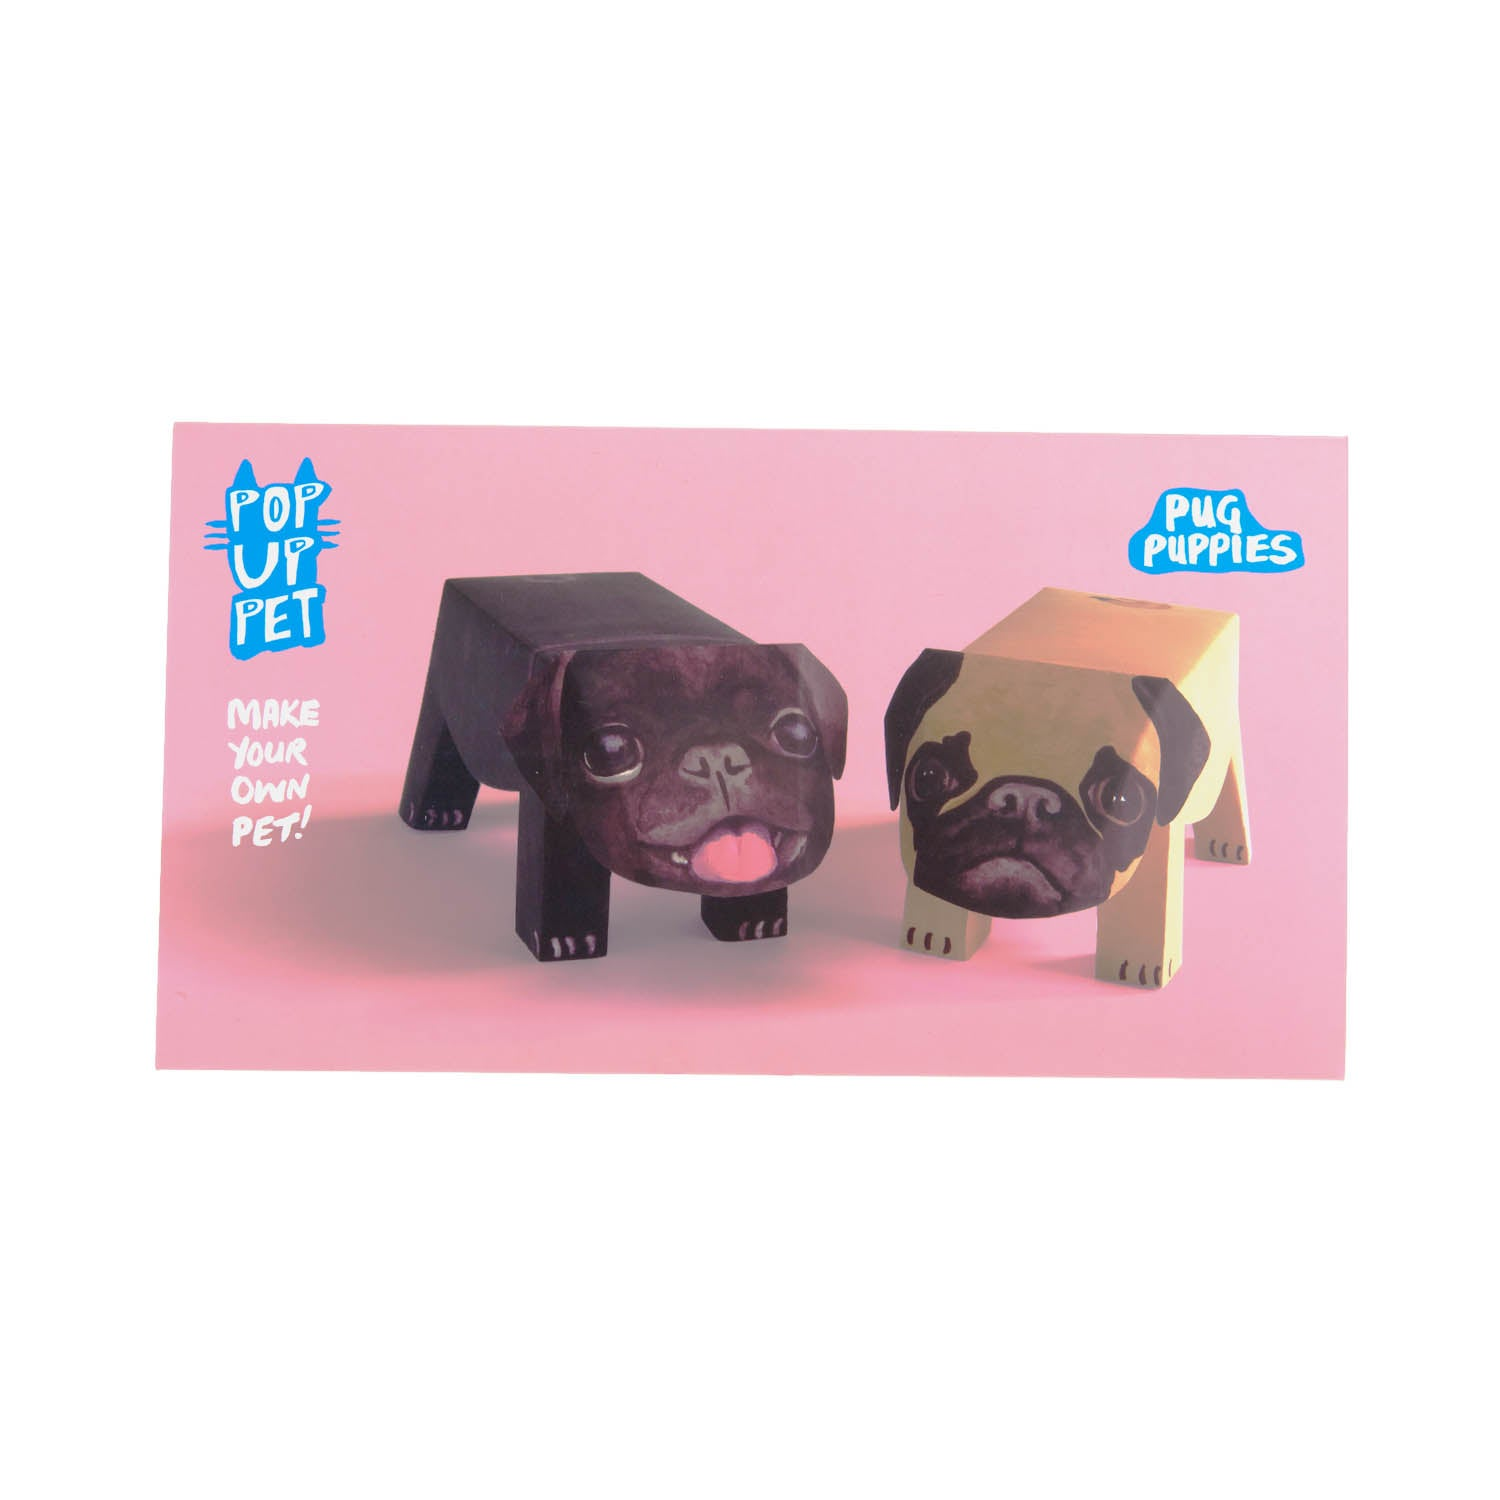 Dog Krazy Gifts - Pug Pop Up Puppies, part of the range of Pug themed gifts available from DogKrazyGifts.co.uk